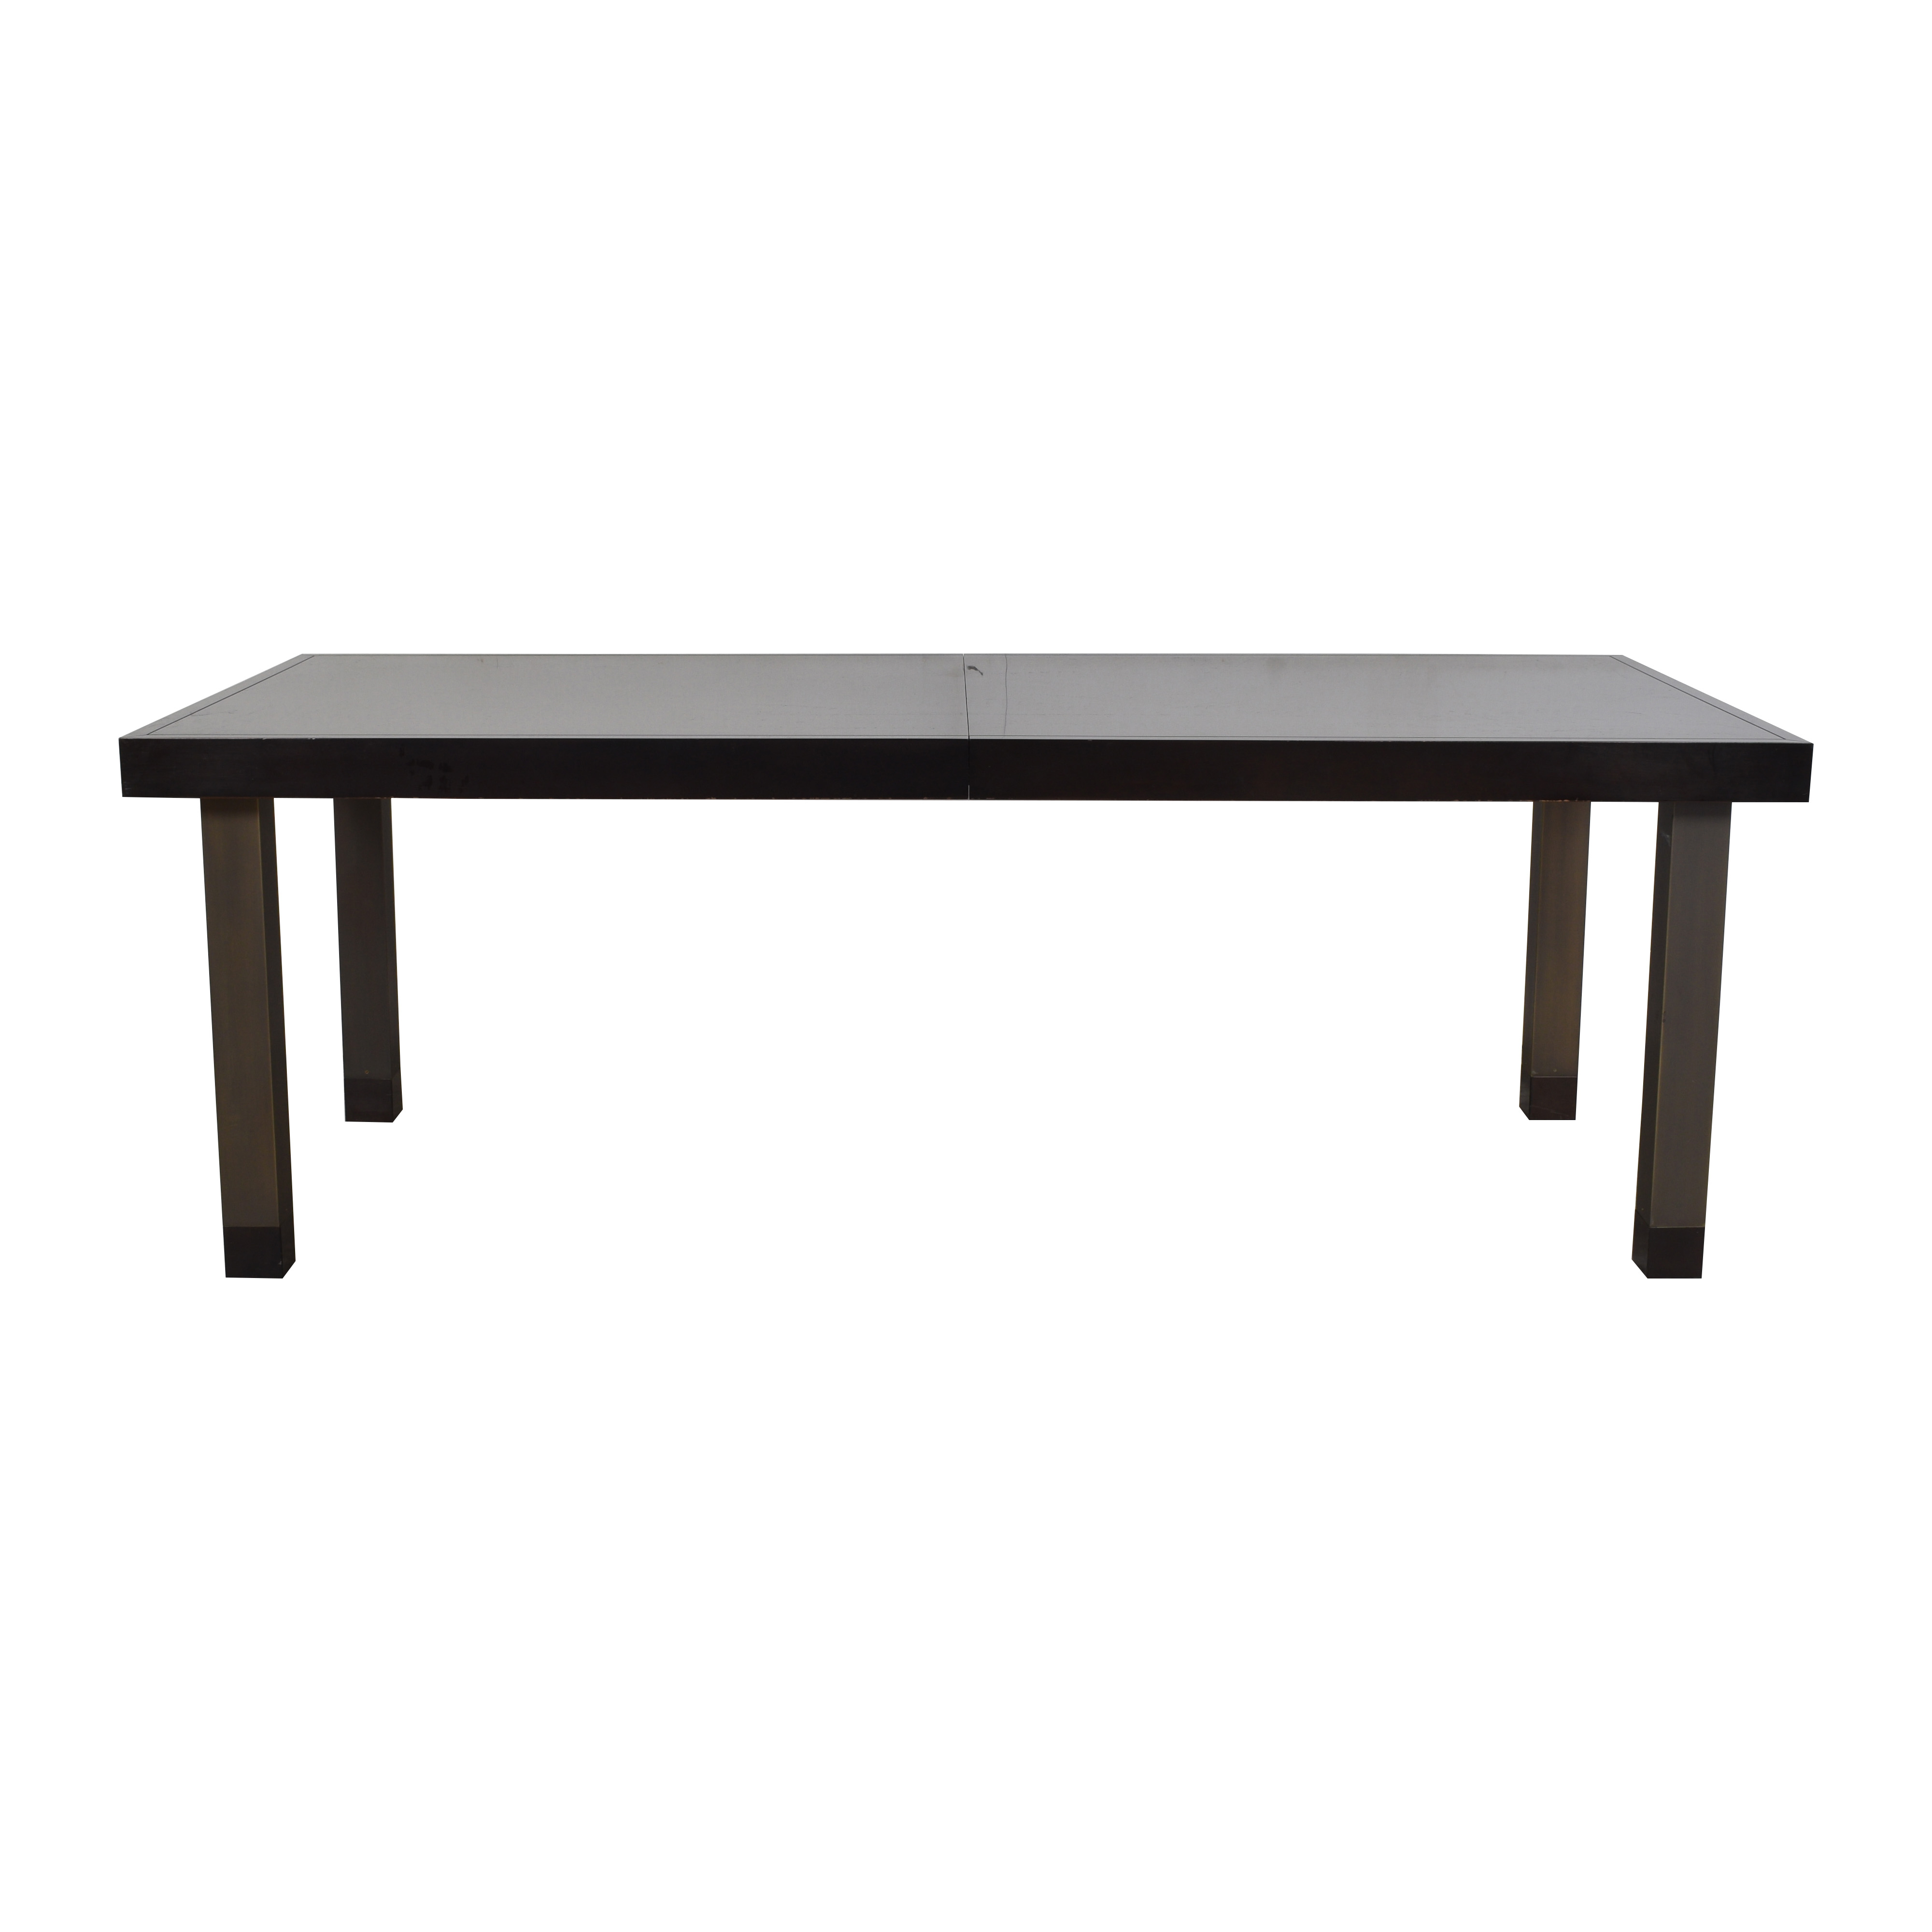 Baker Furniture Baker Furniture Jacques Garcia Collection Biarritz Dining Table ma